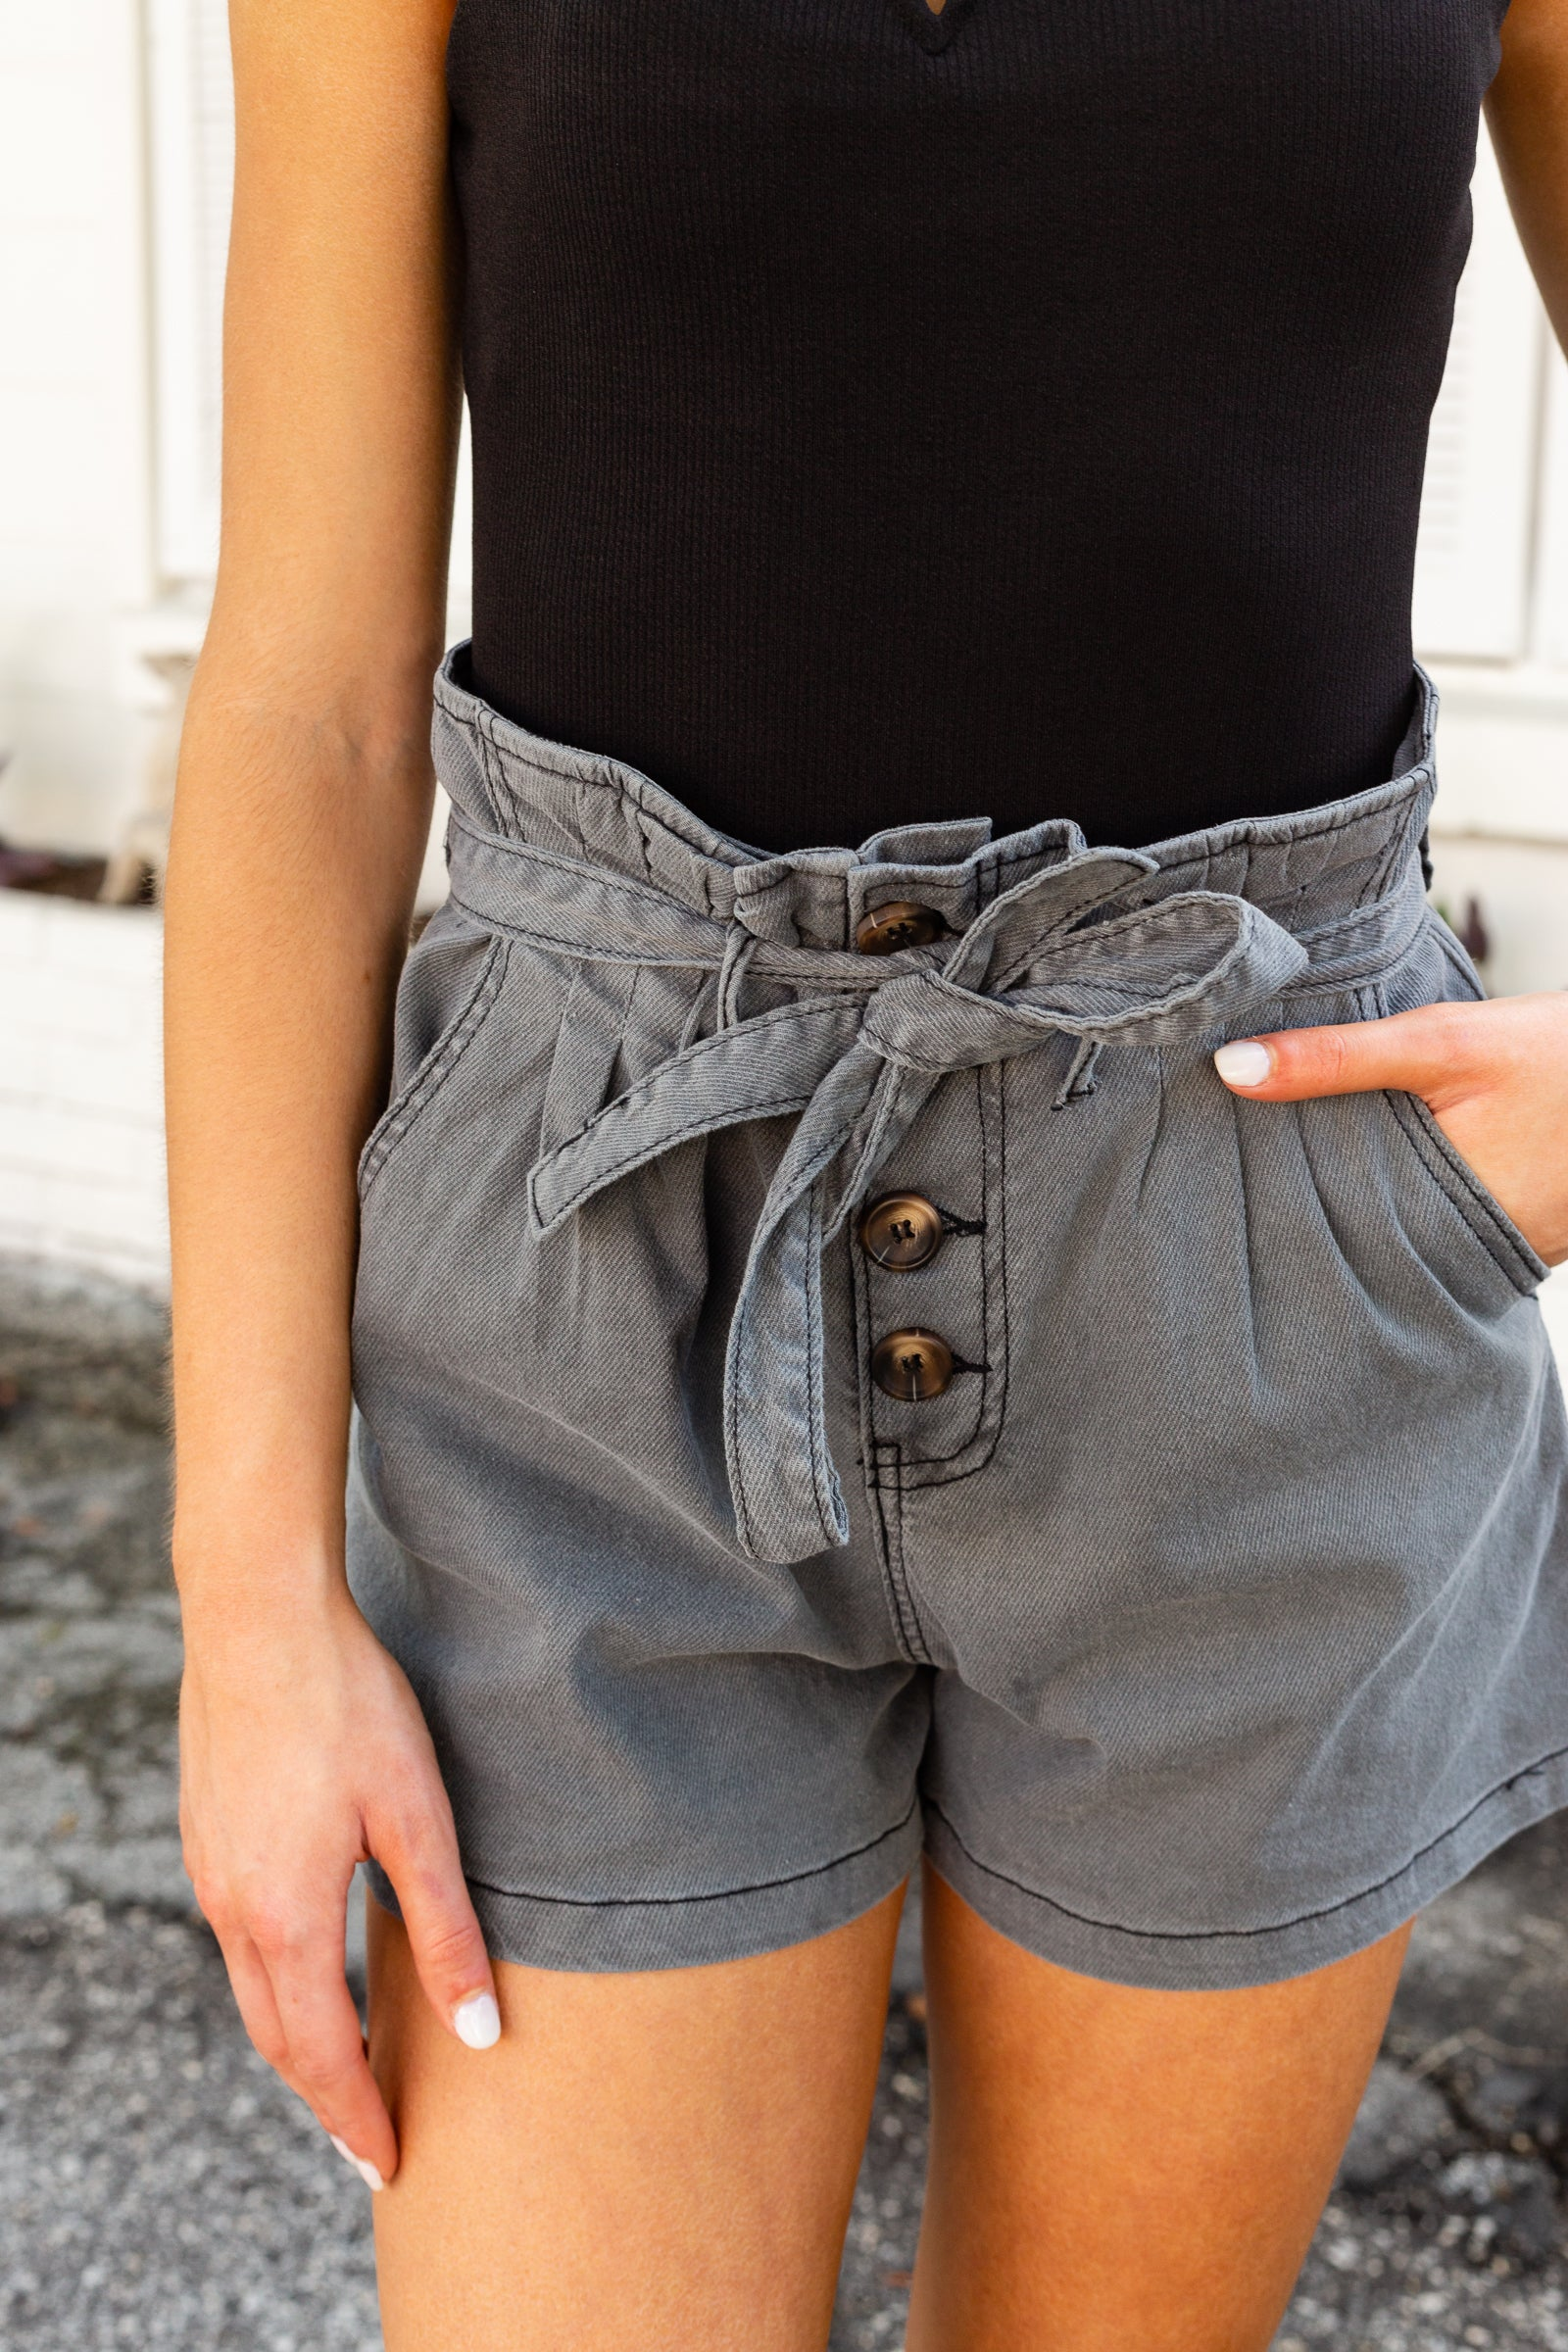 Fitted paper bag style waistband with belt loops lead to a button-down detailed fly and goes down to a traditional 4-pocket structure into relaxed-fit shorts.